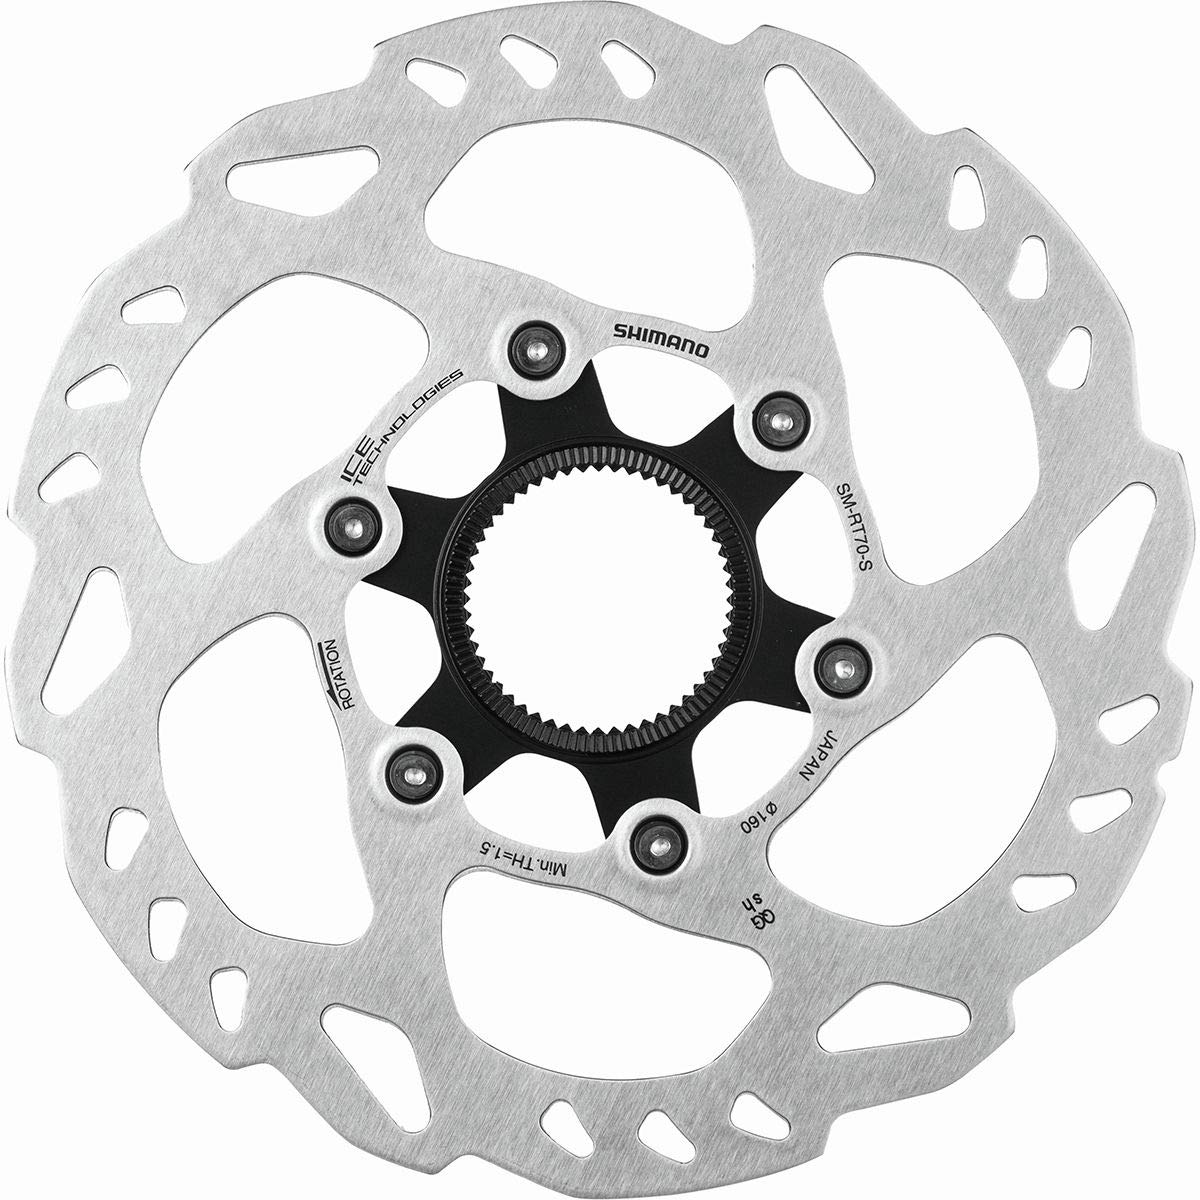 SHIMANO SLX SM-RT70 Rotor - Centerlock One Color, 140mm by SHIMANO